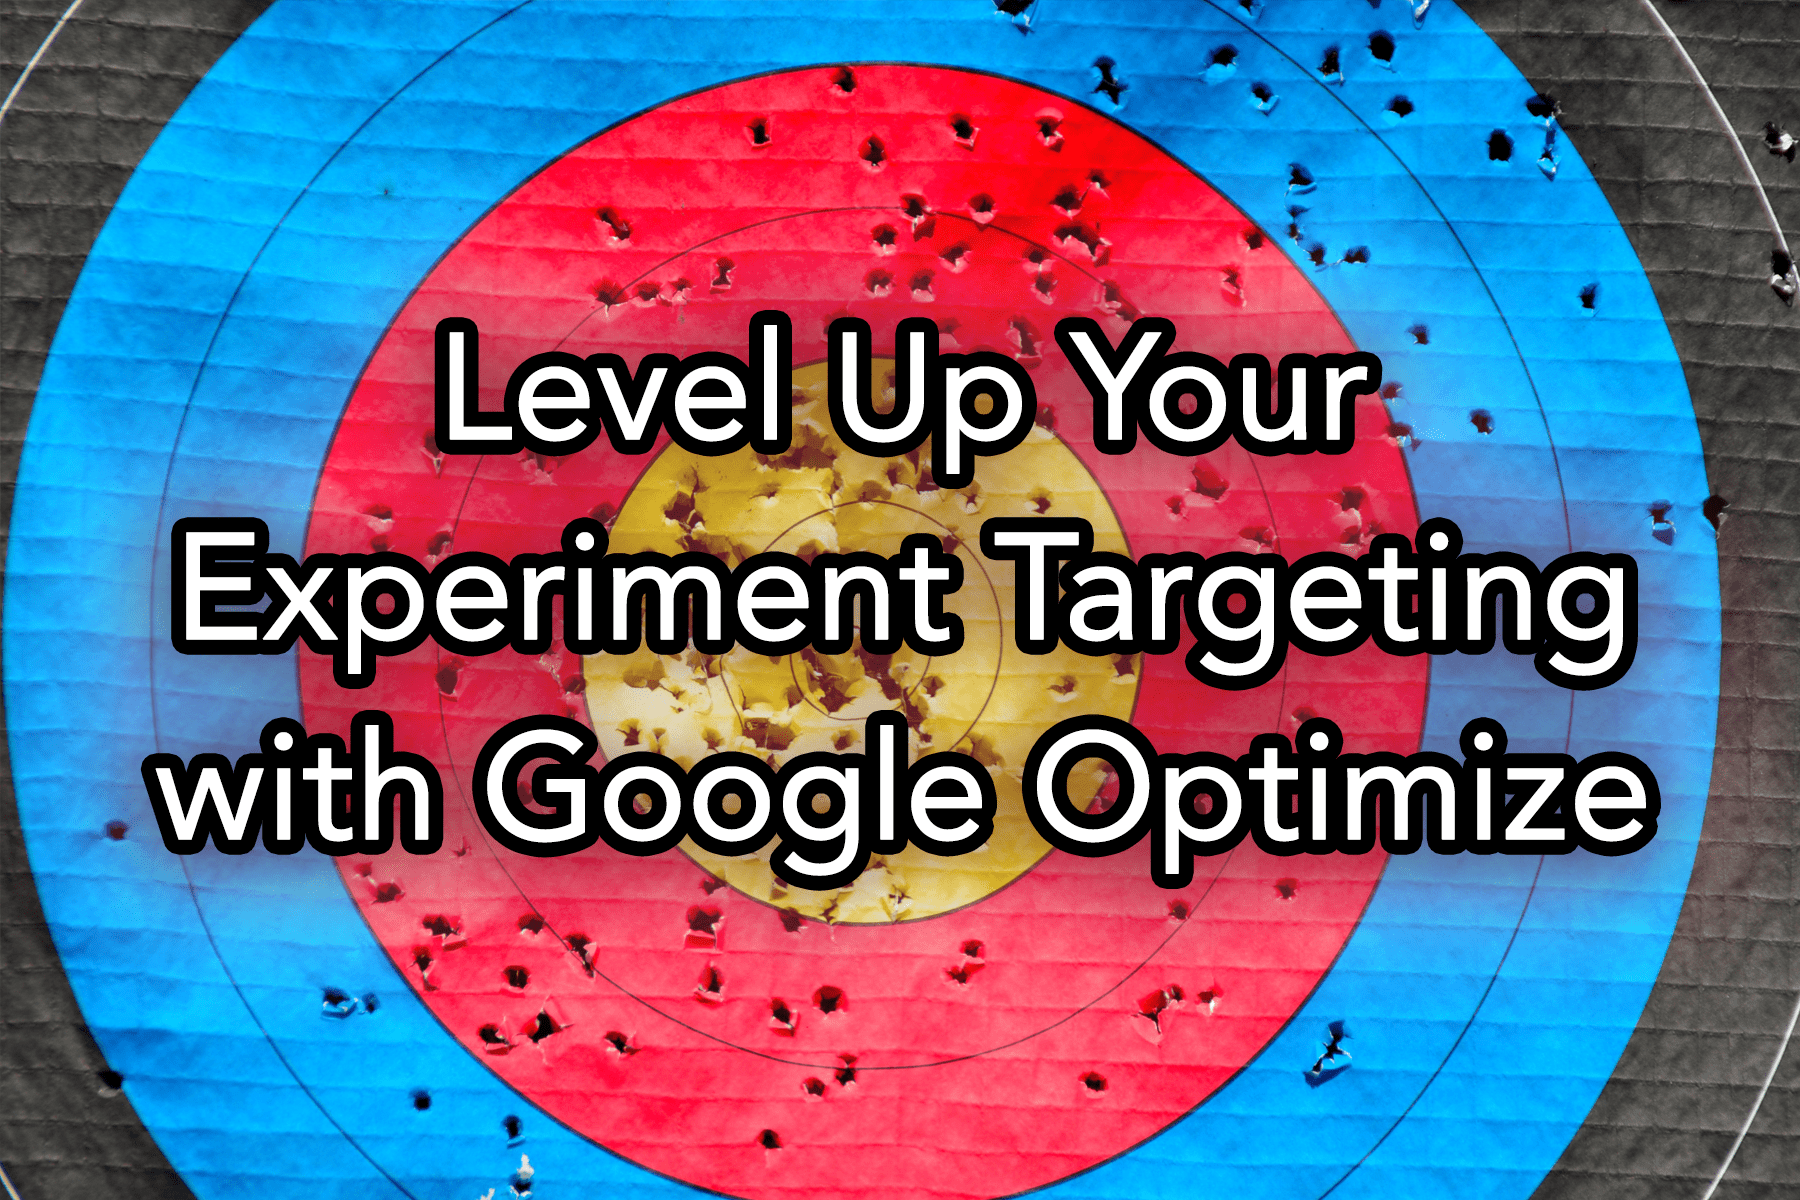 Level Up Your Experiment Targeting with Google Optimize